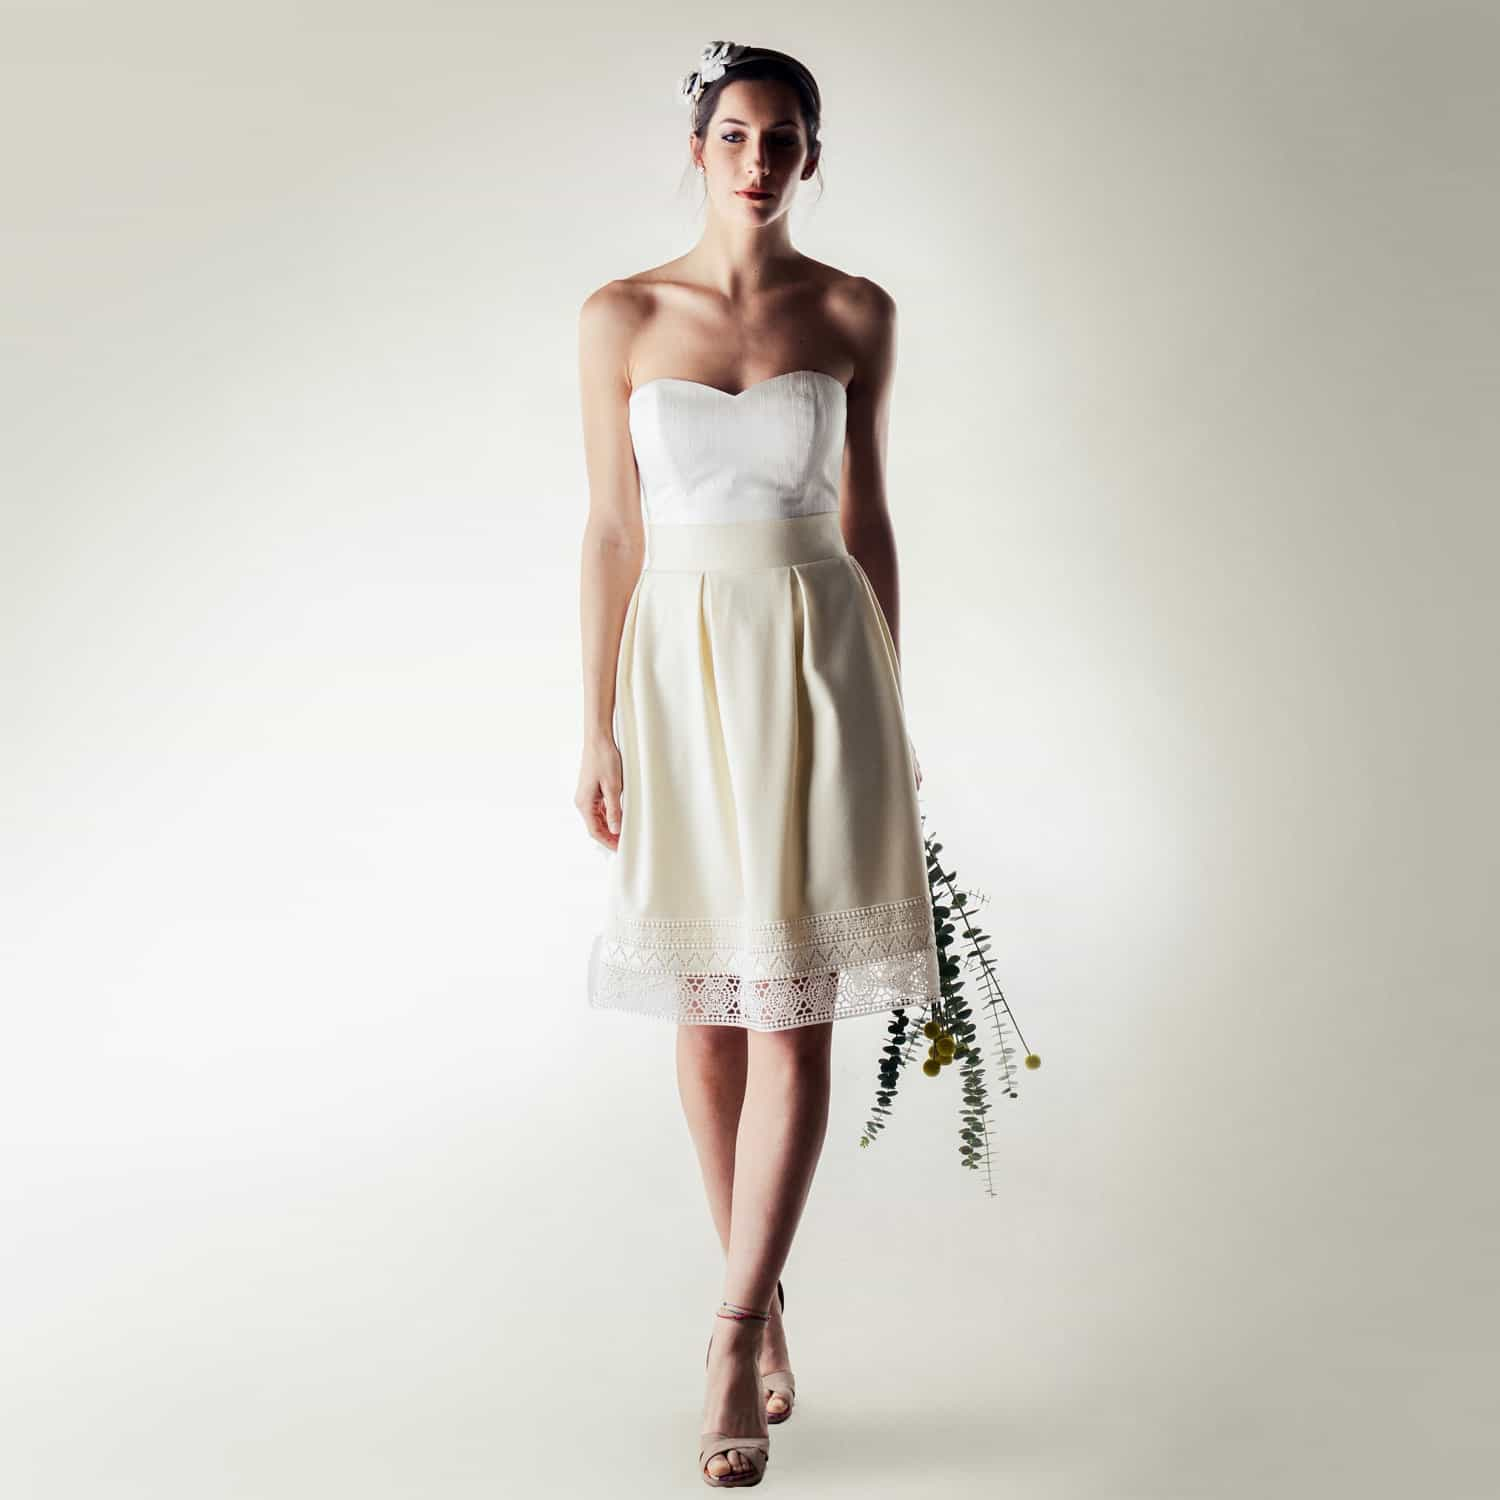 Winter Wedding Dress.Calendula Short Winter Wedding Dress